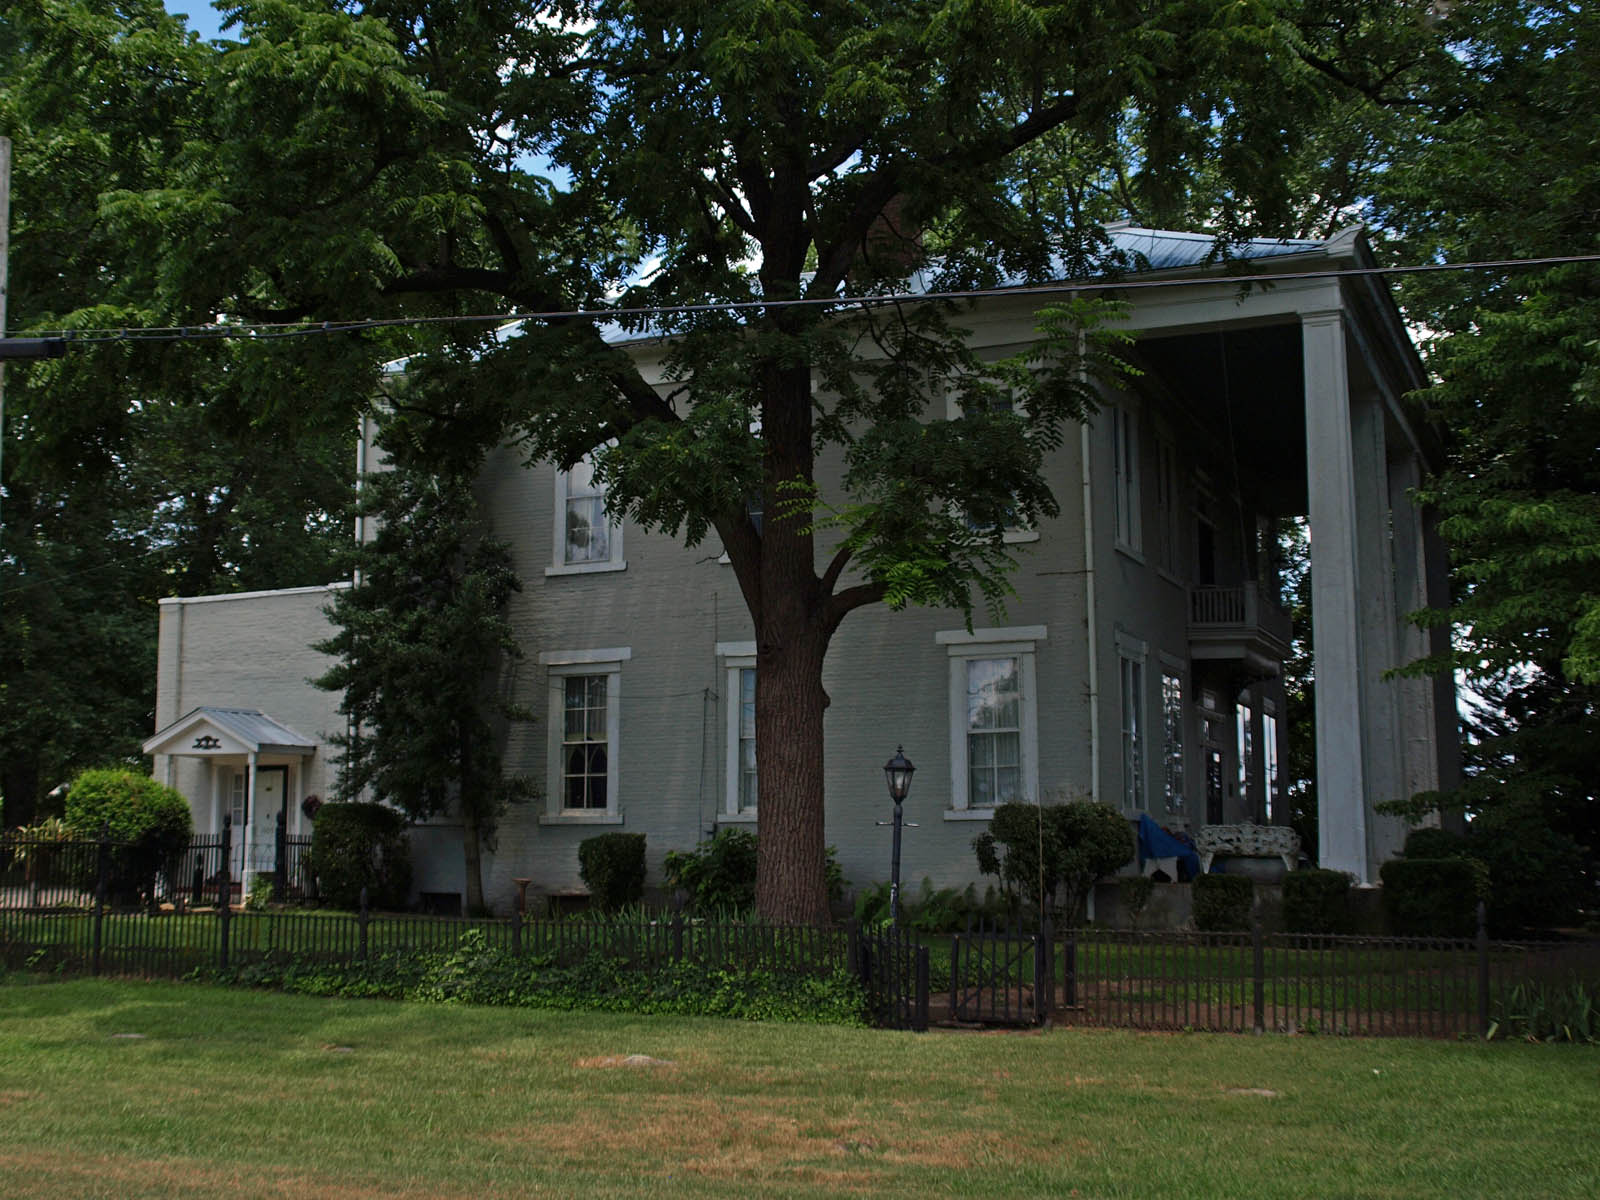 A modern side view of the house.